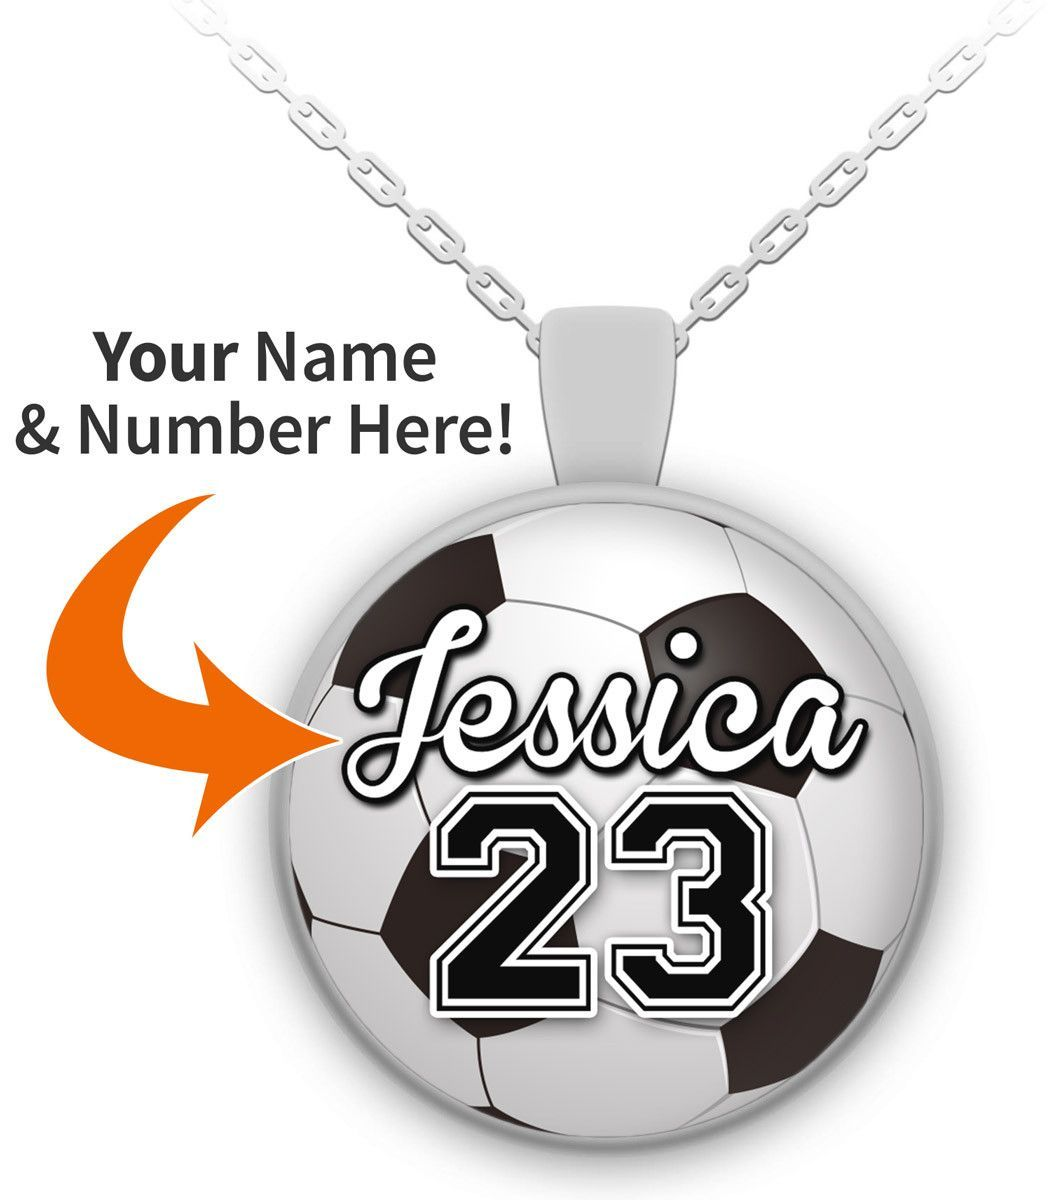 Customizable soccer pendant necklace pendants soccer players personalized soccer necklace pendant mozeypictures Image collections